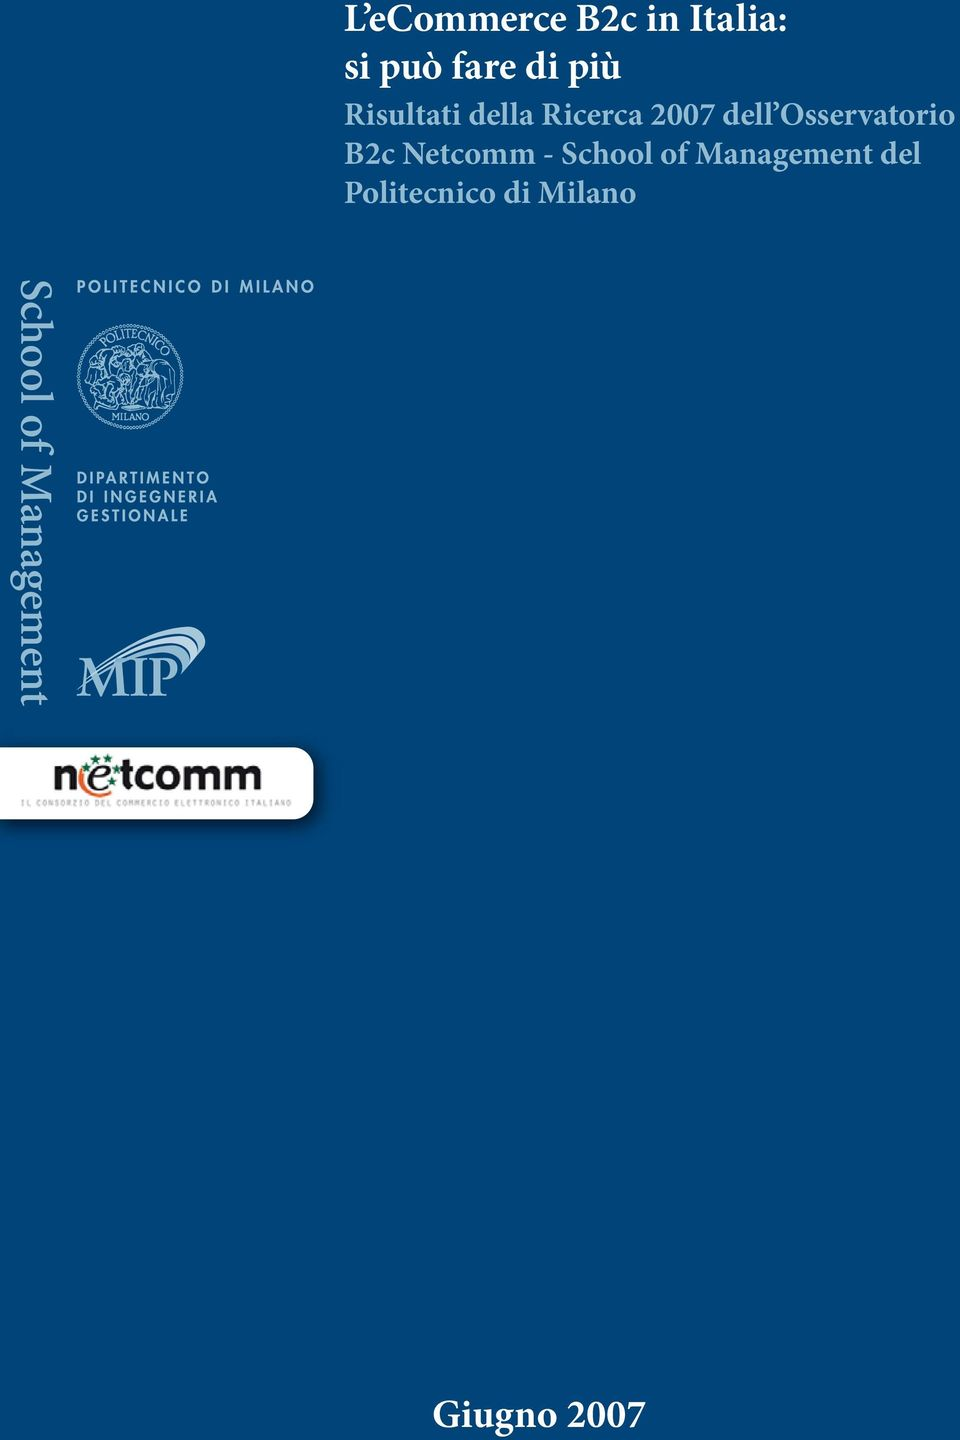 Osservatorio B2c Netcomm - School of